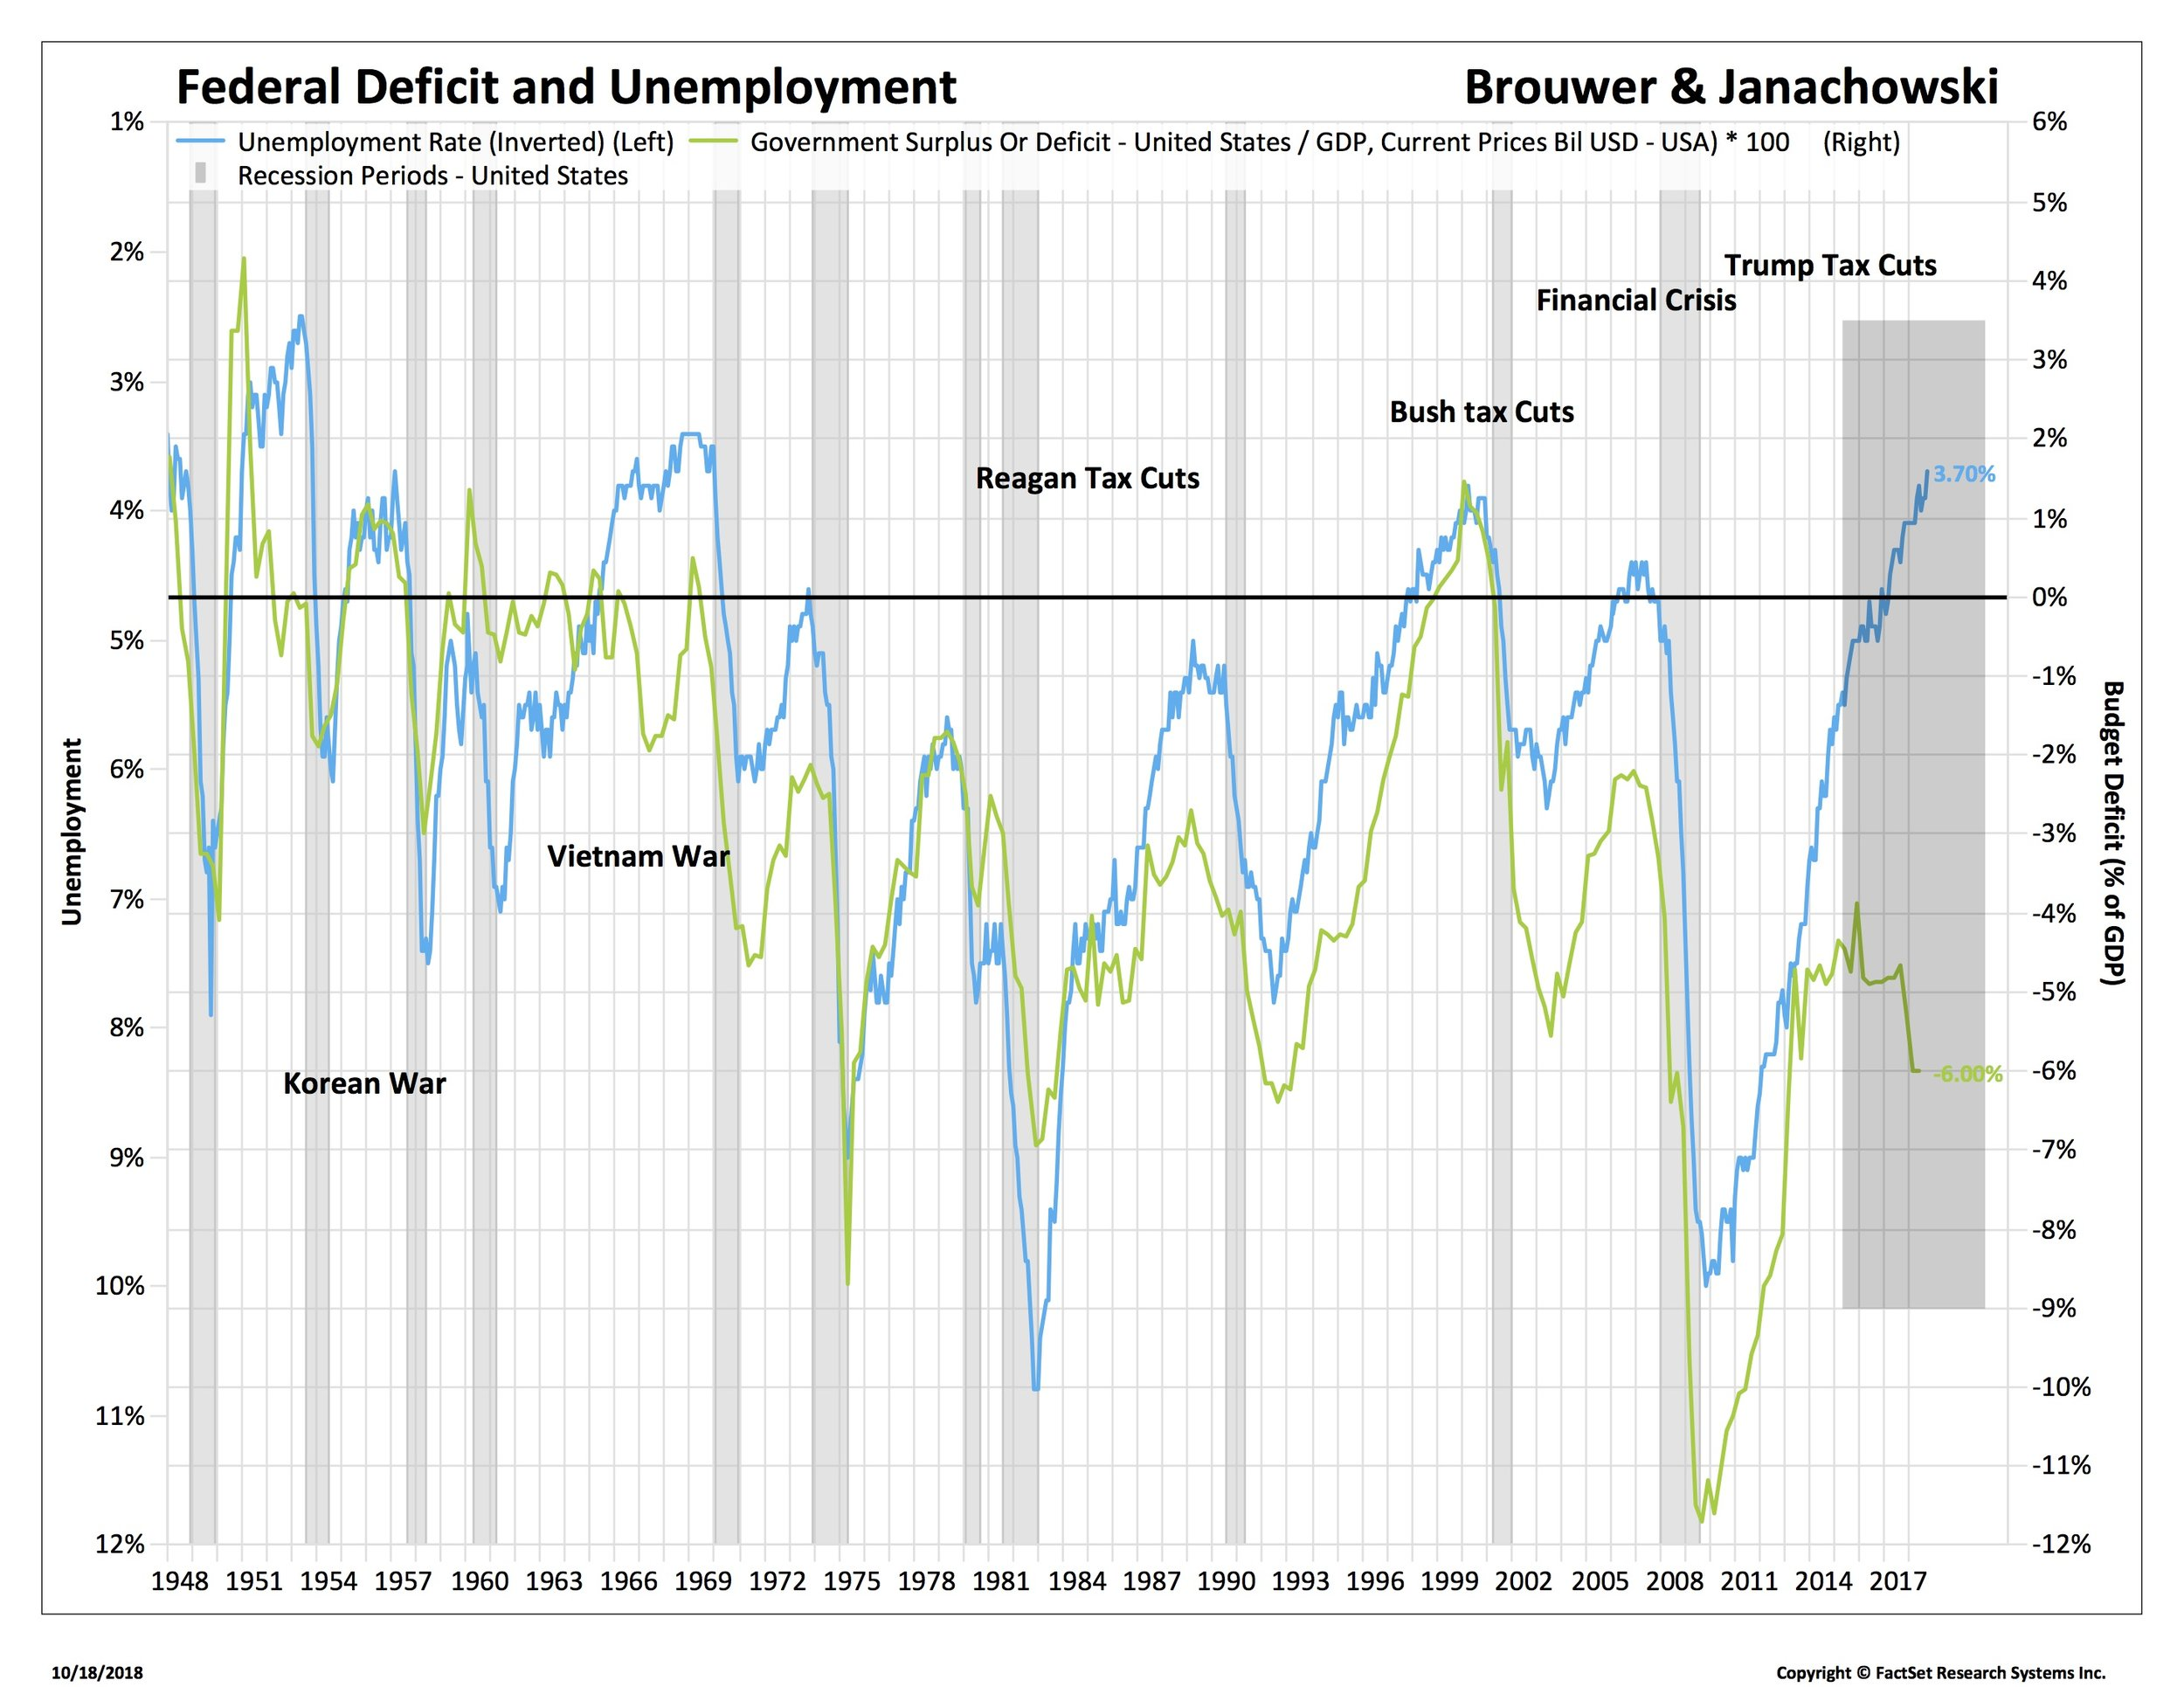 1 deficits and employment_WDFC-USA.jpg